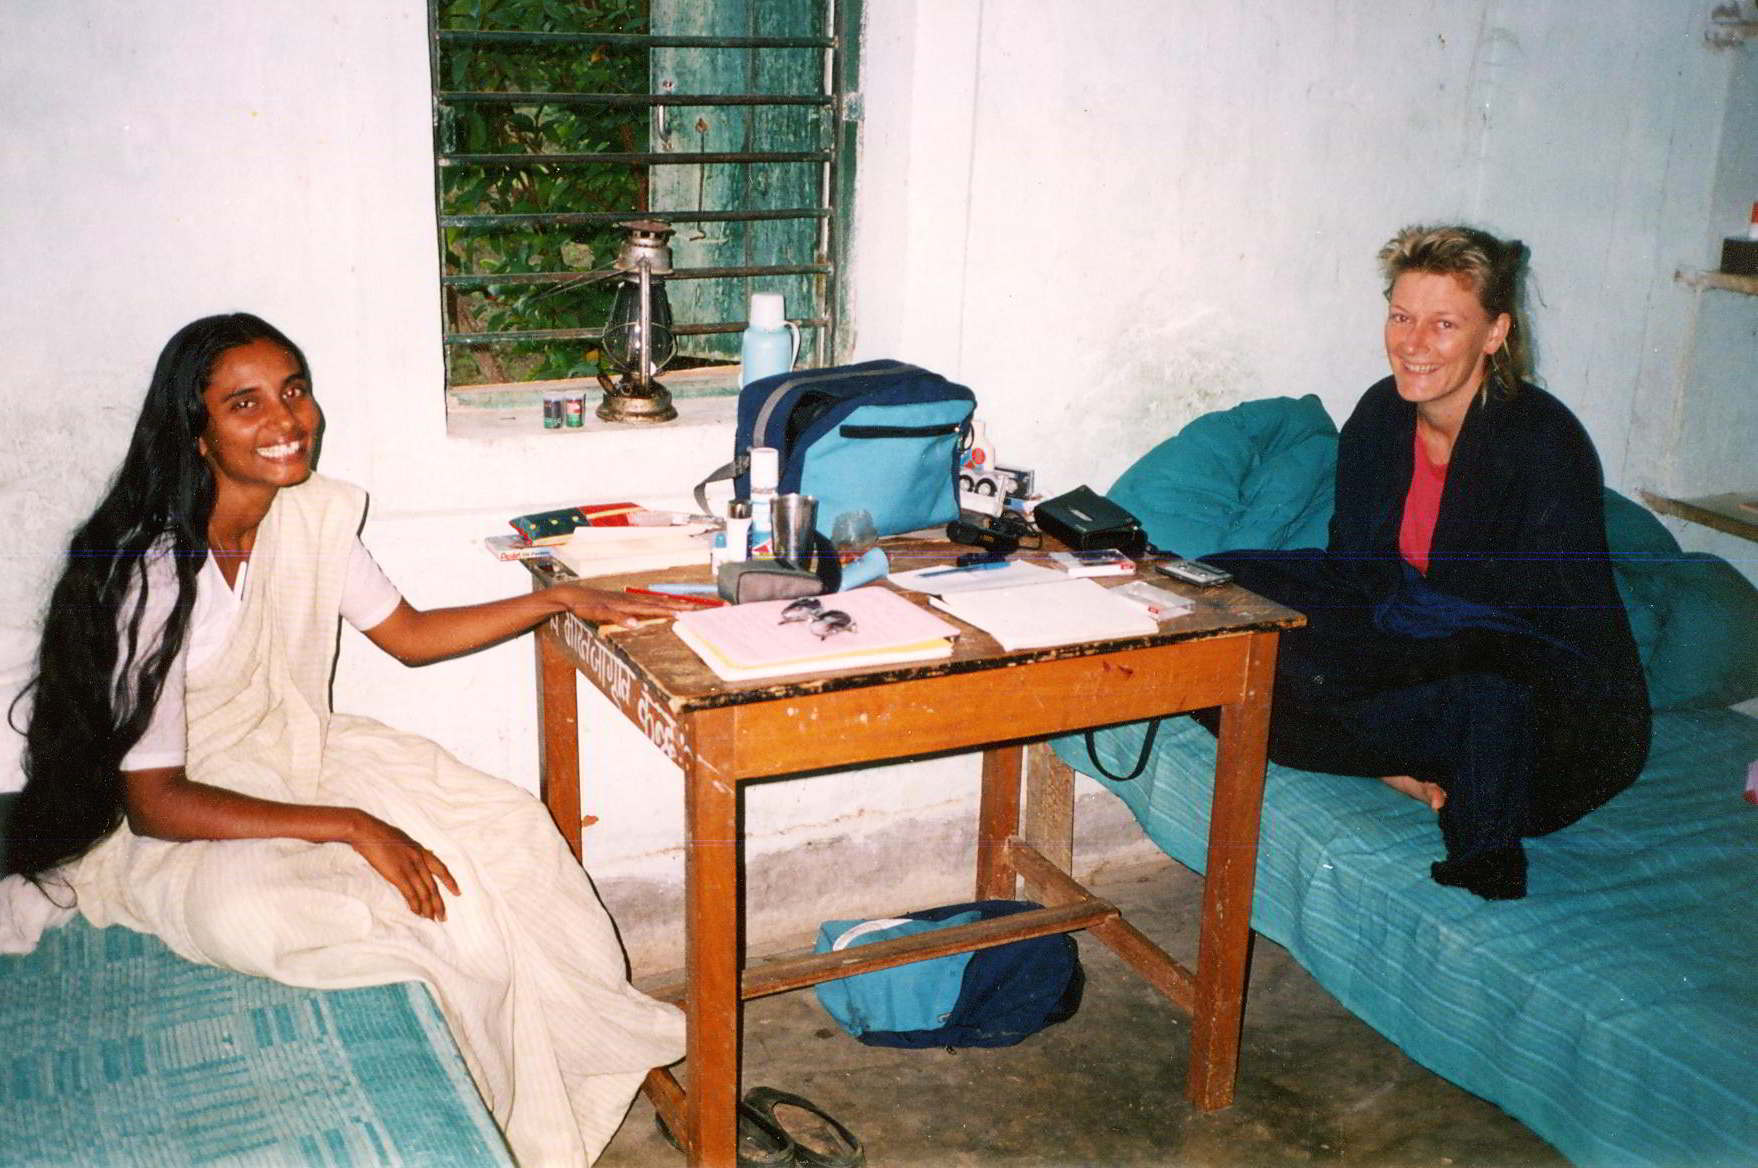 Australian woman and Indian woman working at a table in a small bedroom in India